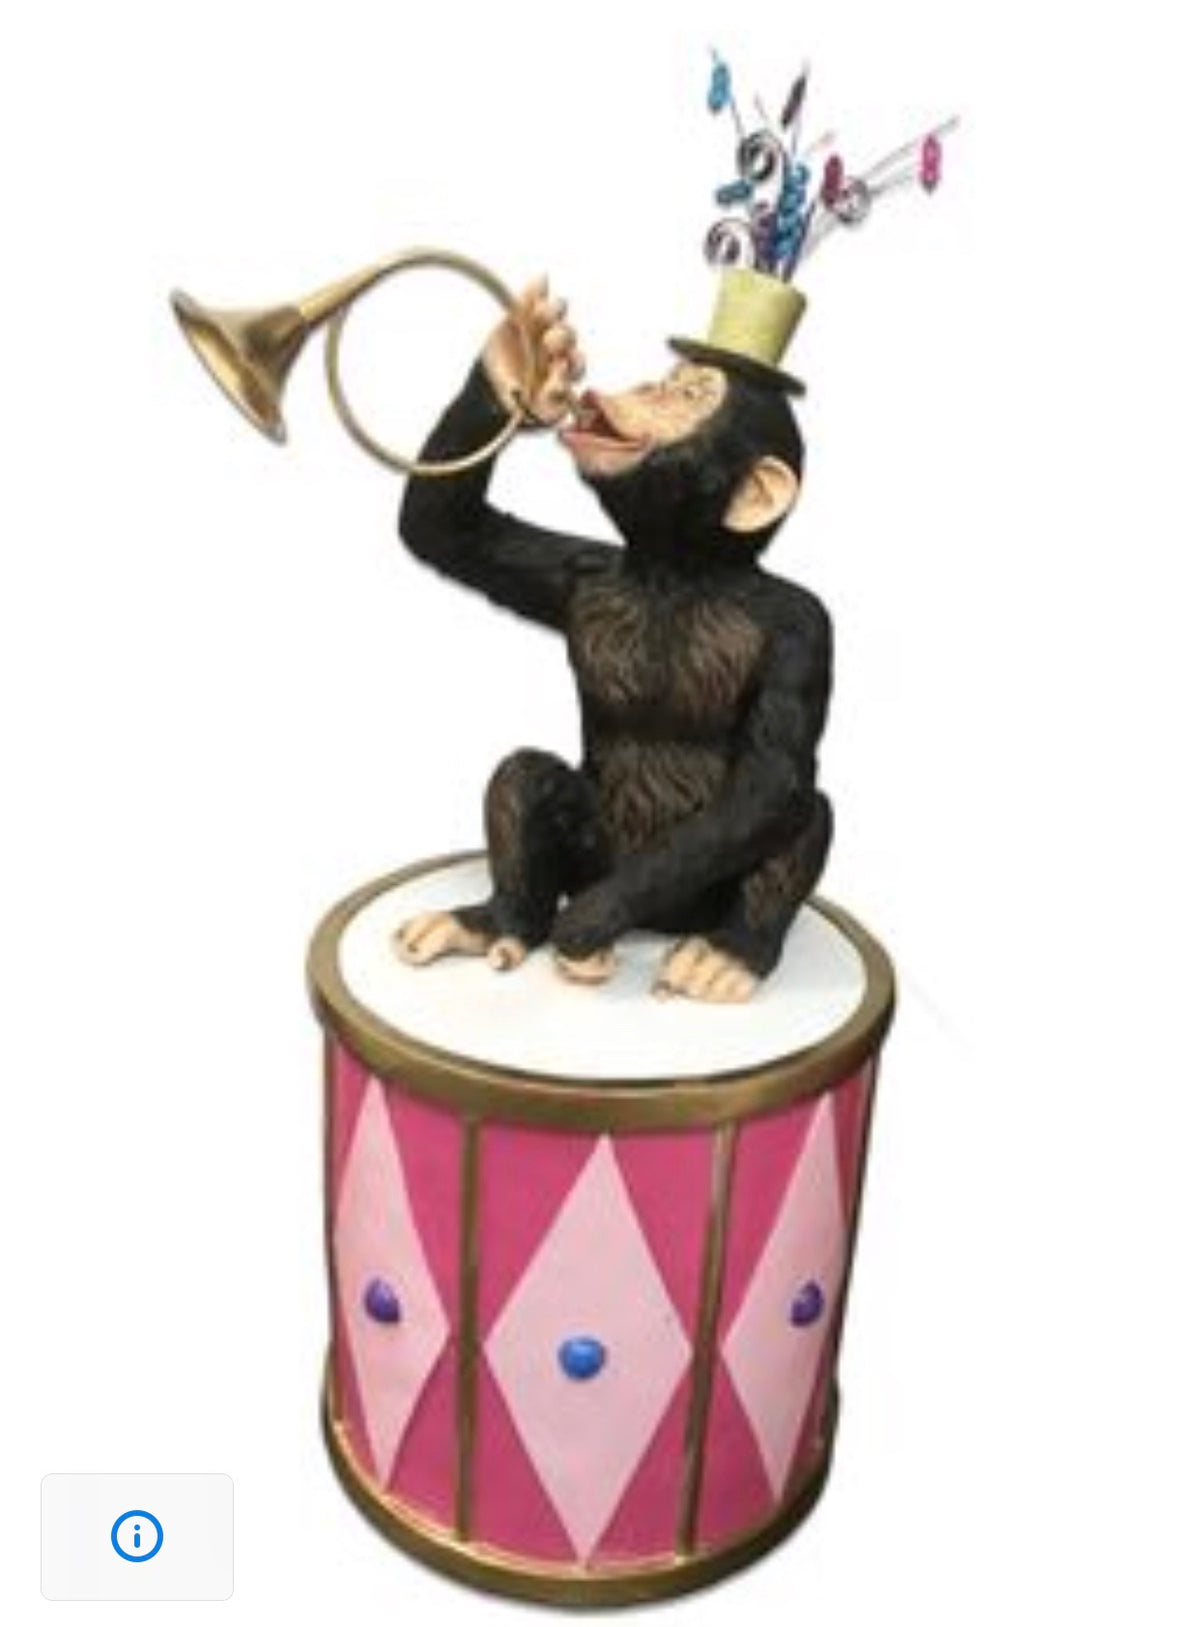 Circus Monkey With Pink Drum